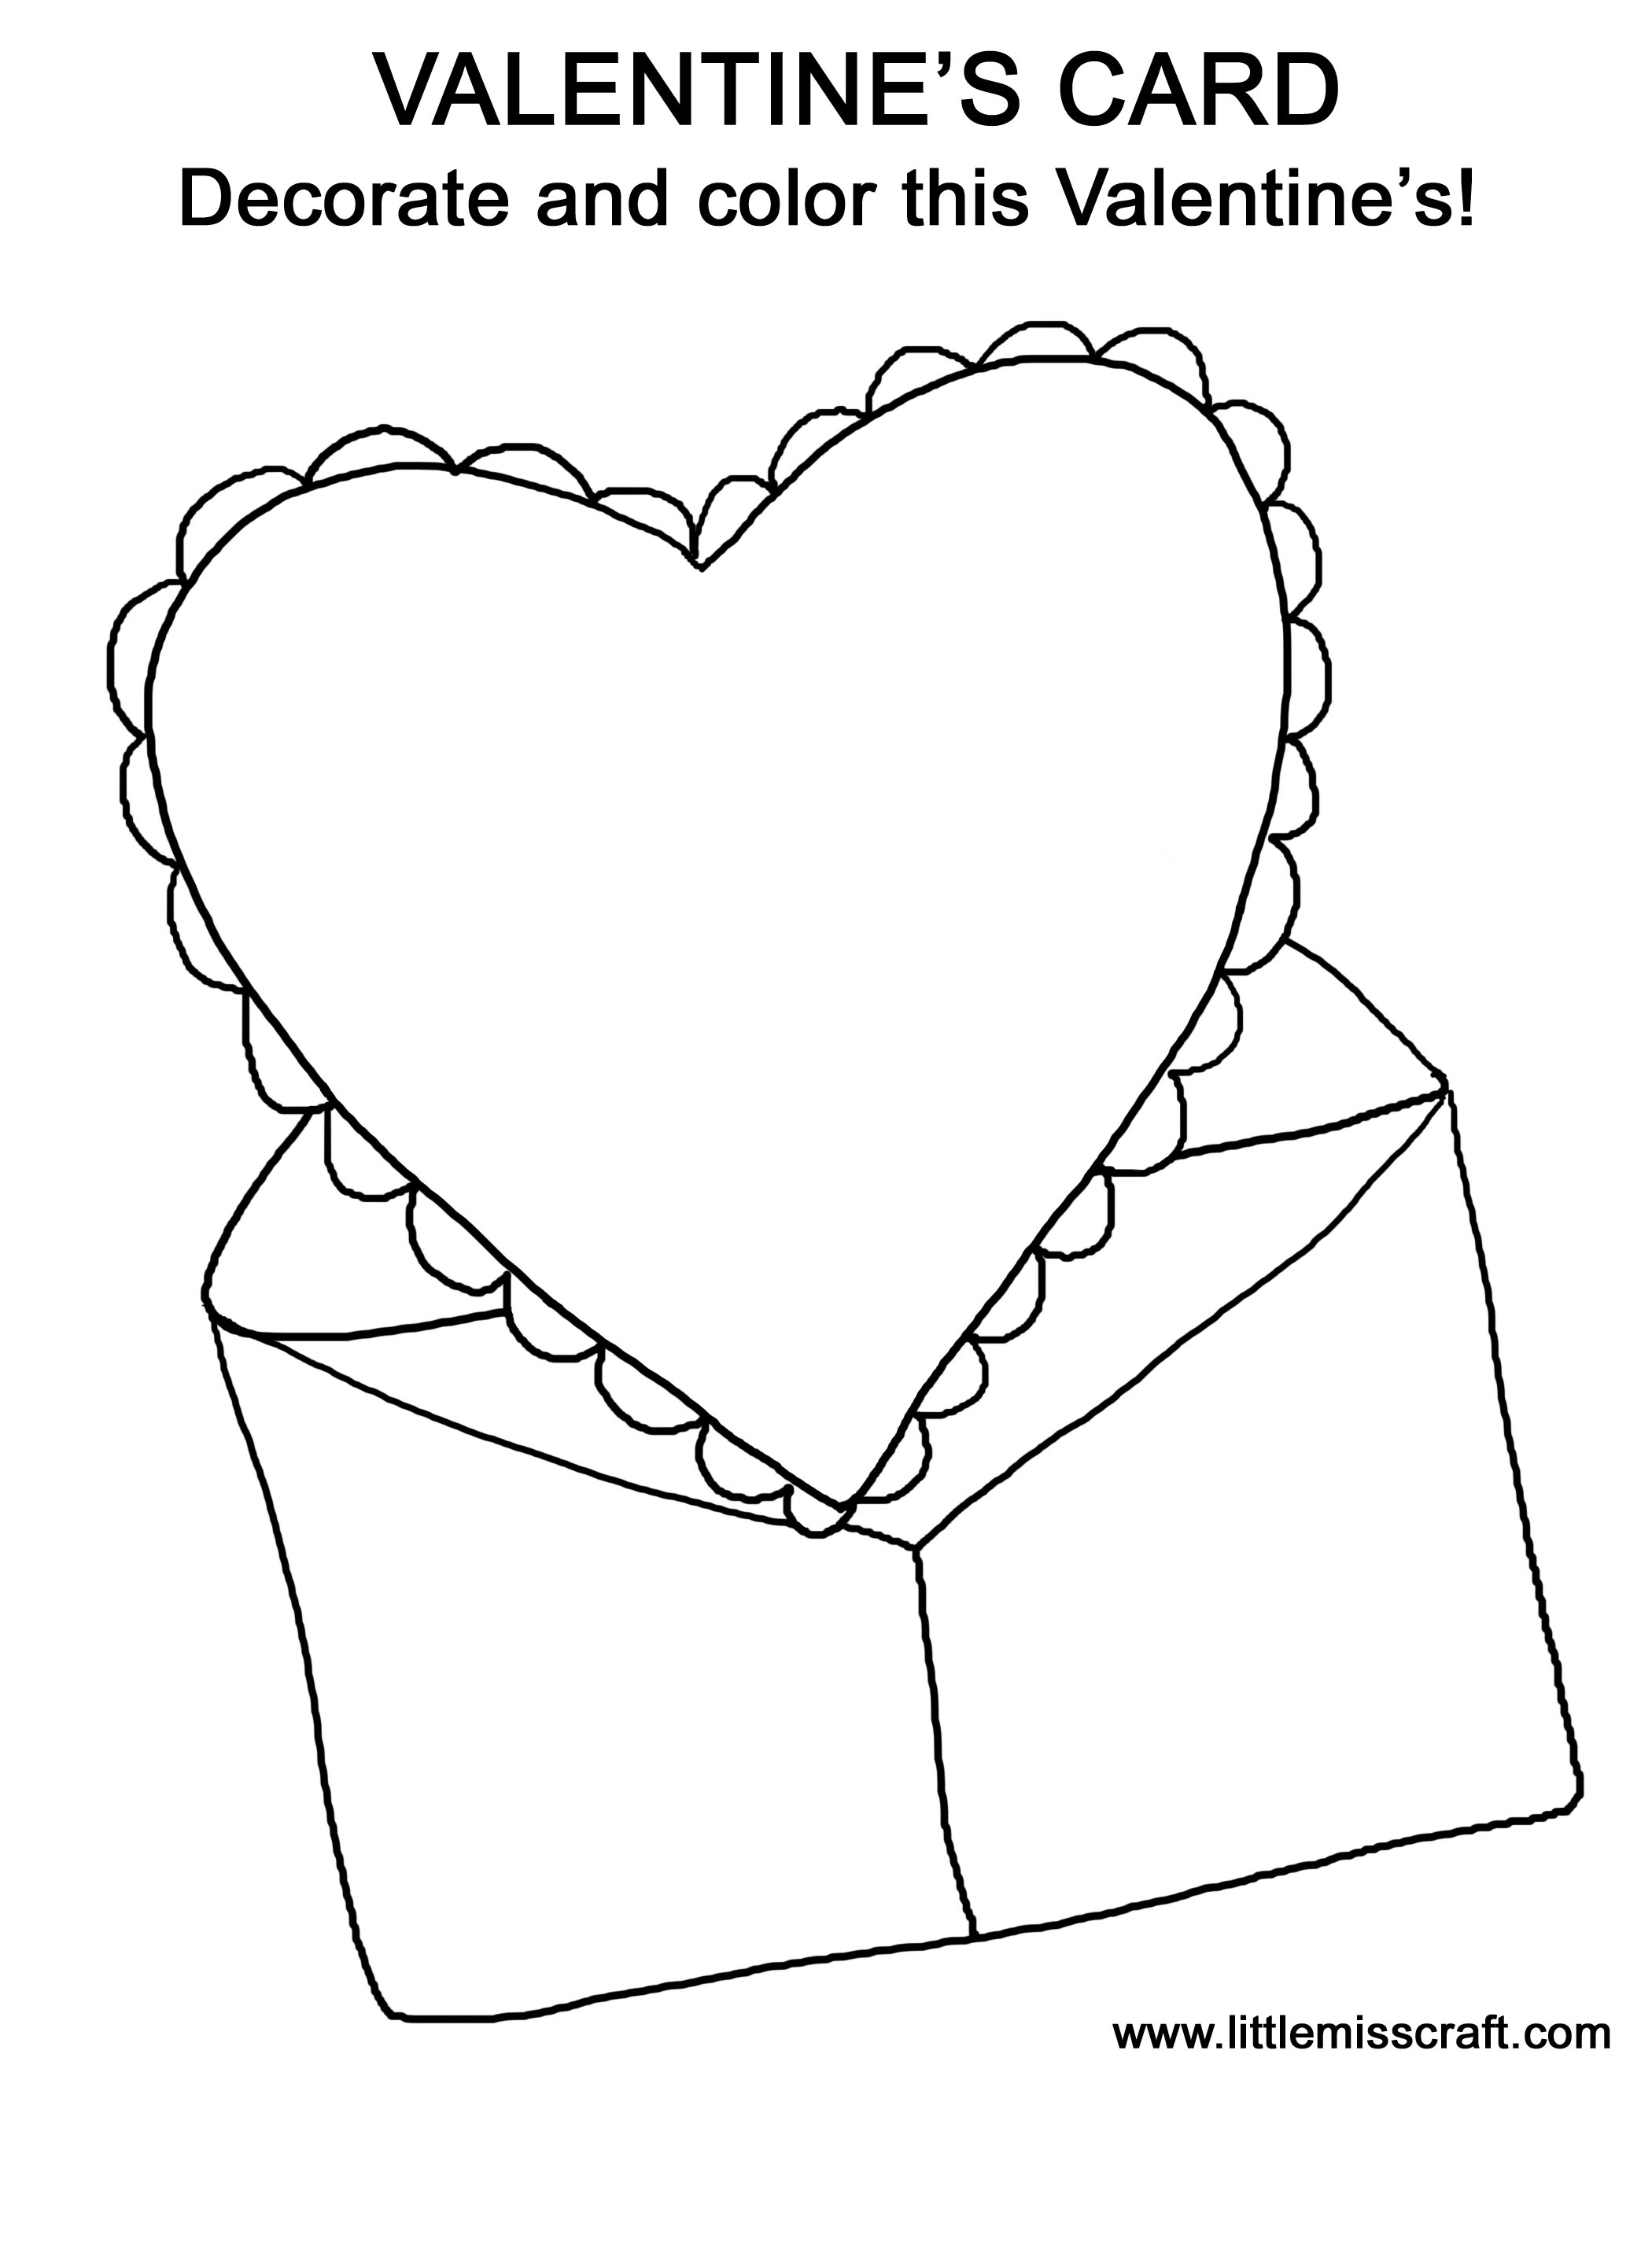 coloring pages for mother's day cards - post 114